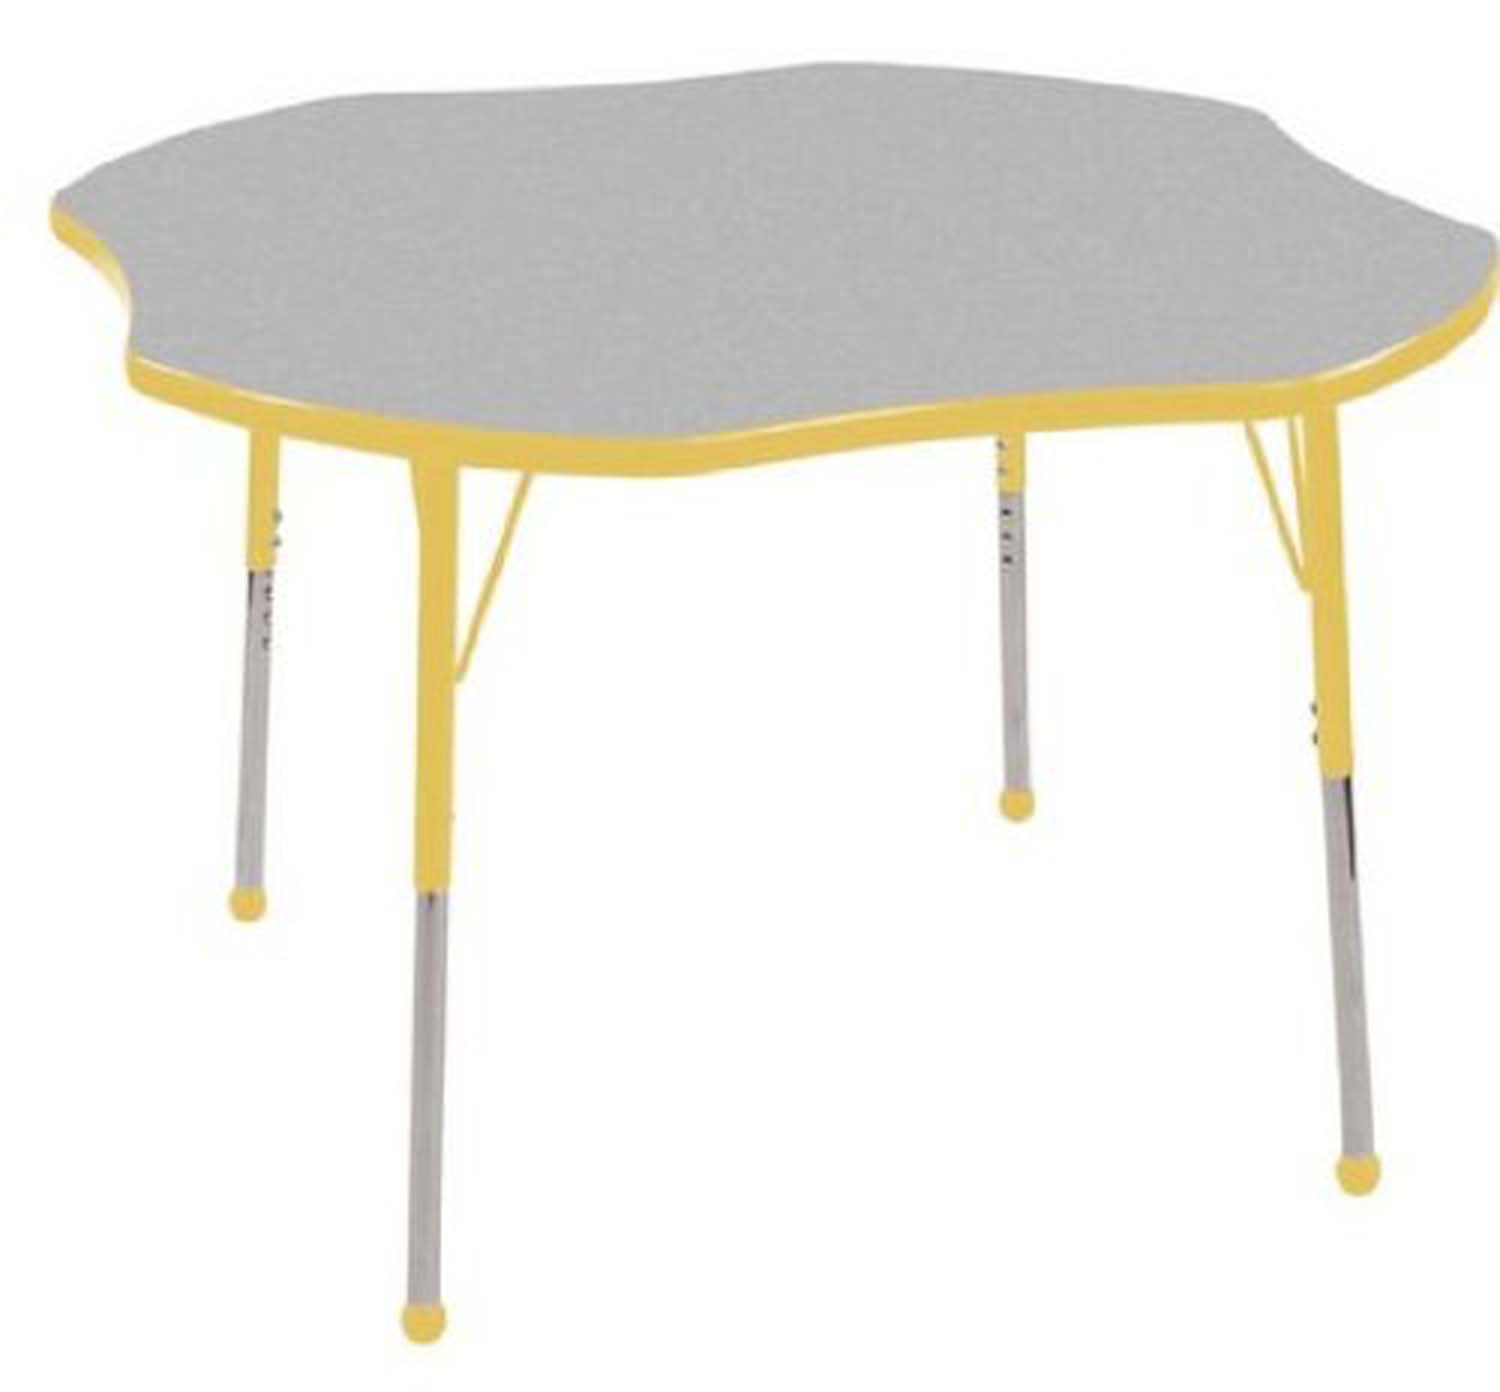 """Ecr4Kids Play School Classroom 48"""" Clover Height Adjustable Kids Activity Table Gray With Standard Ball Glide Legs Yellow at Sears.com"""